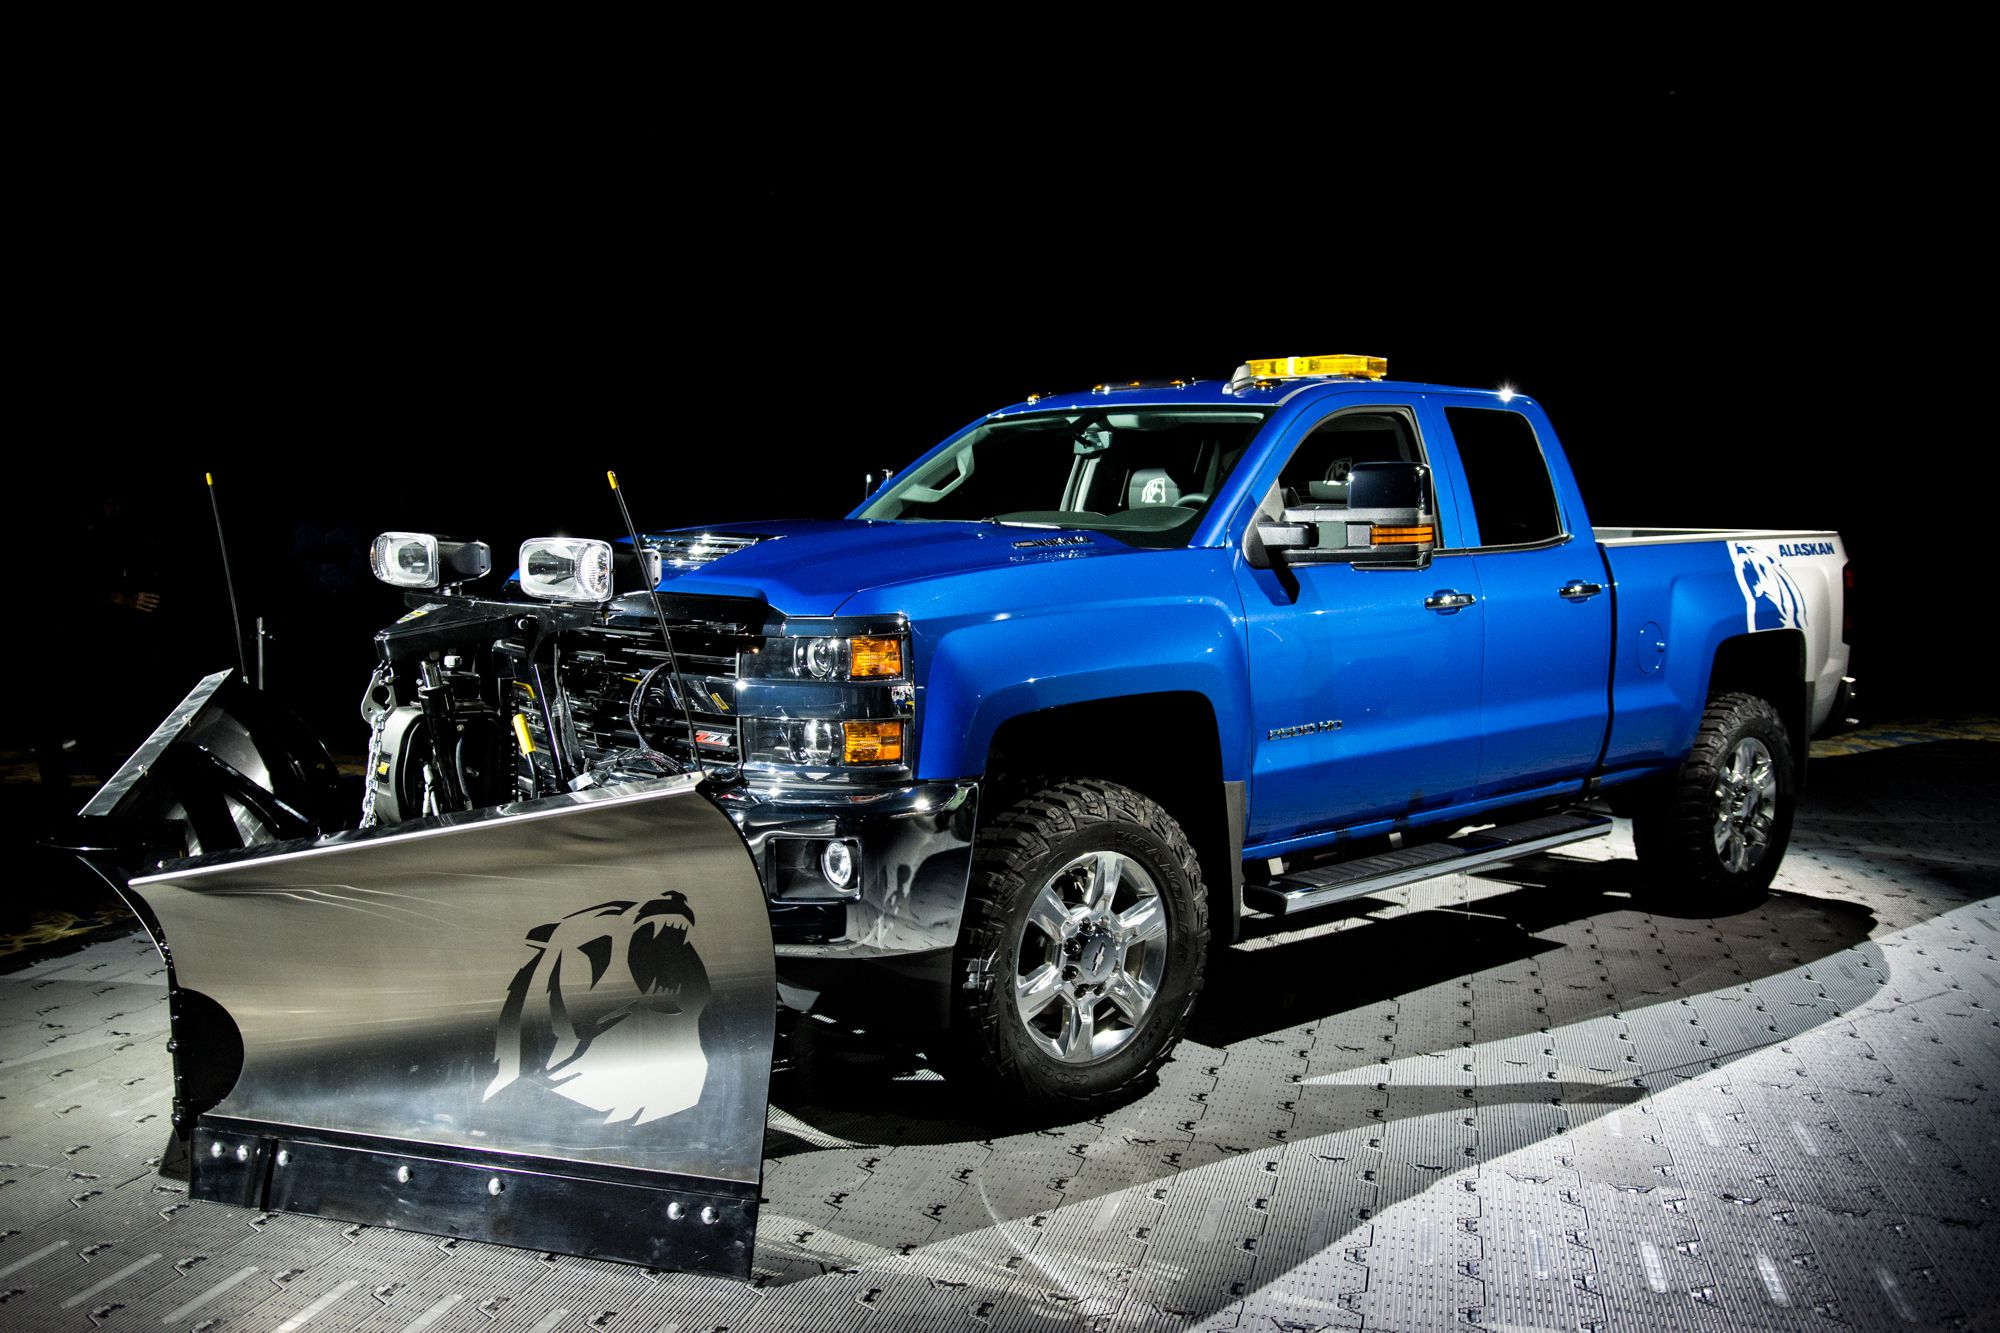 Chevy unveils grizzly of a truck: Silverado 2500HD Alaskan ...